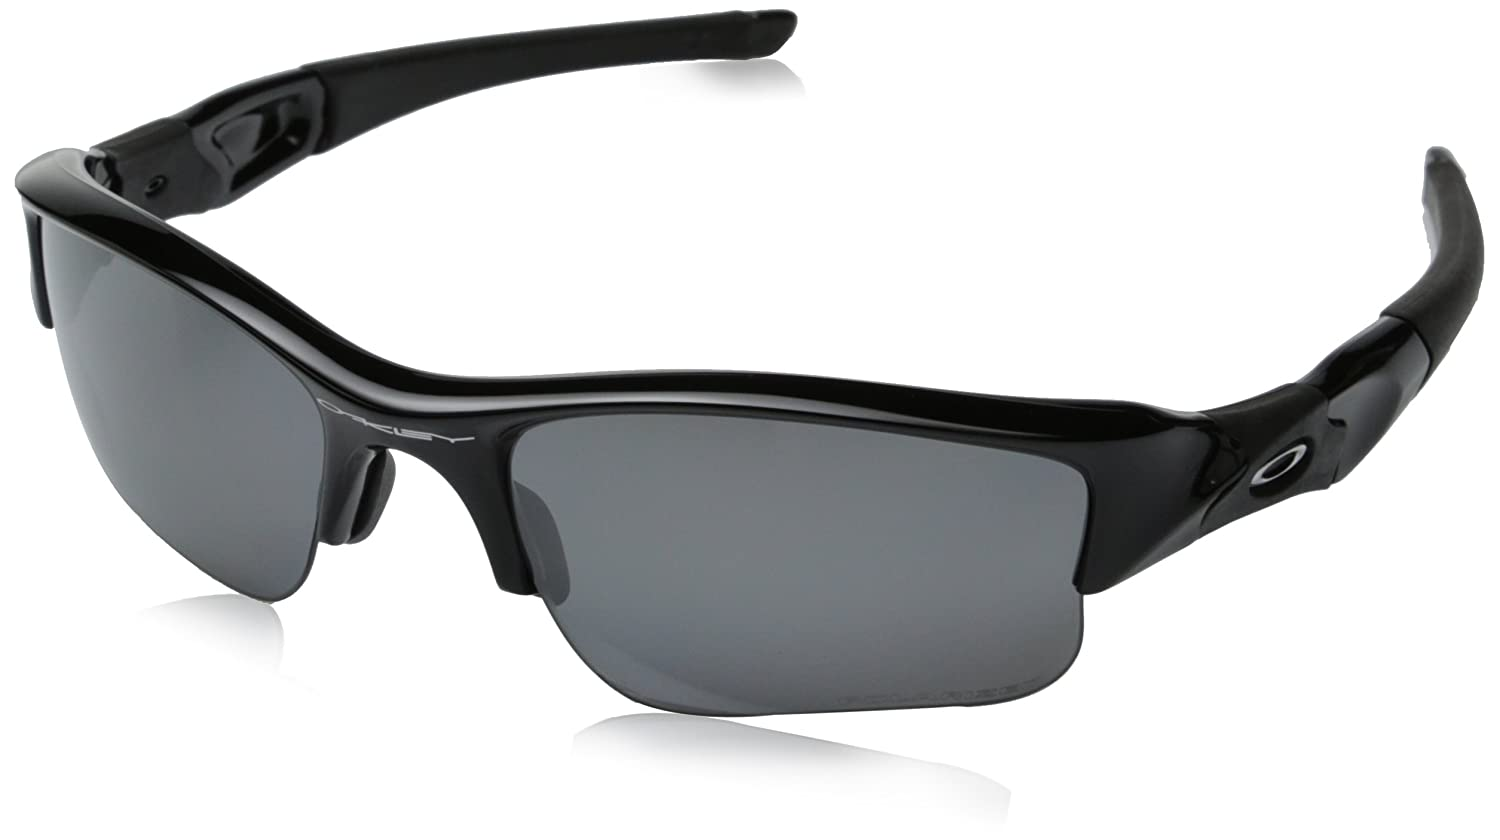 oakley half jacket xlj sunglasses sale  amazon: oakley men's flak jacket xlj sunglasses,jet black frame/black iridium,one size: oakley: shoes